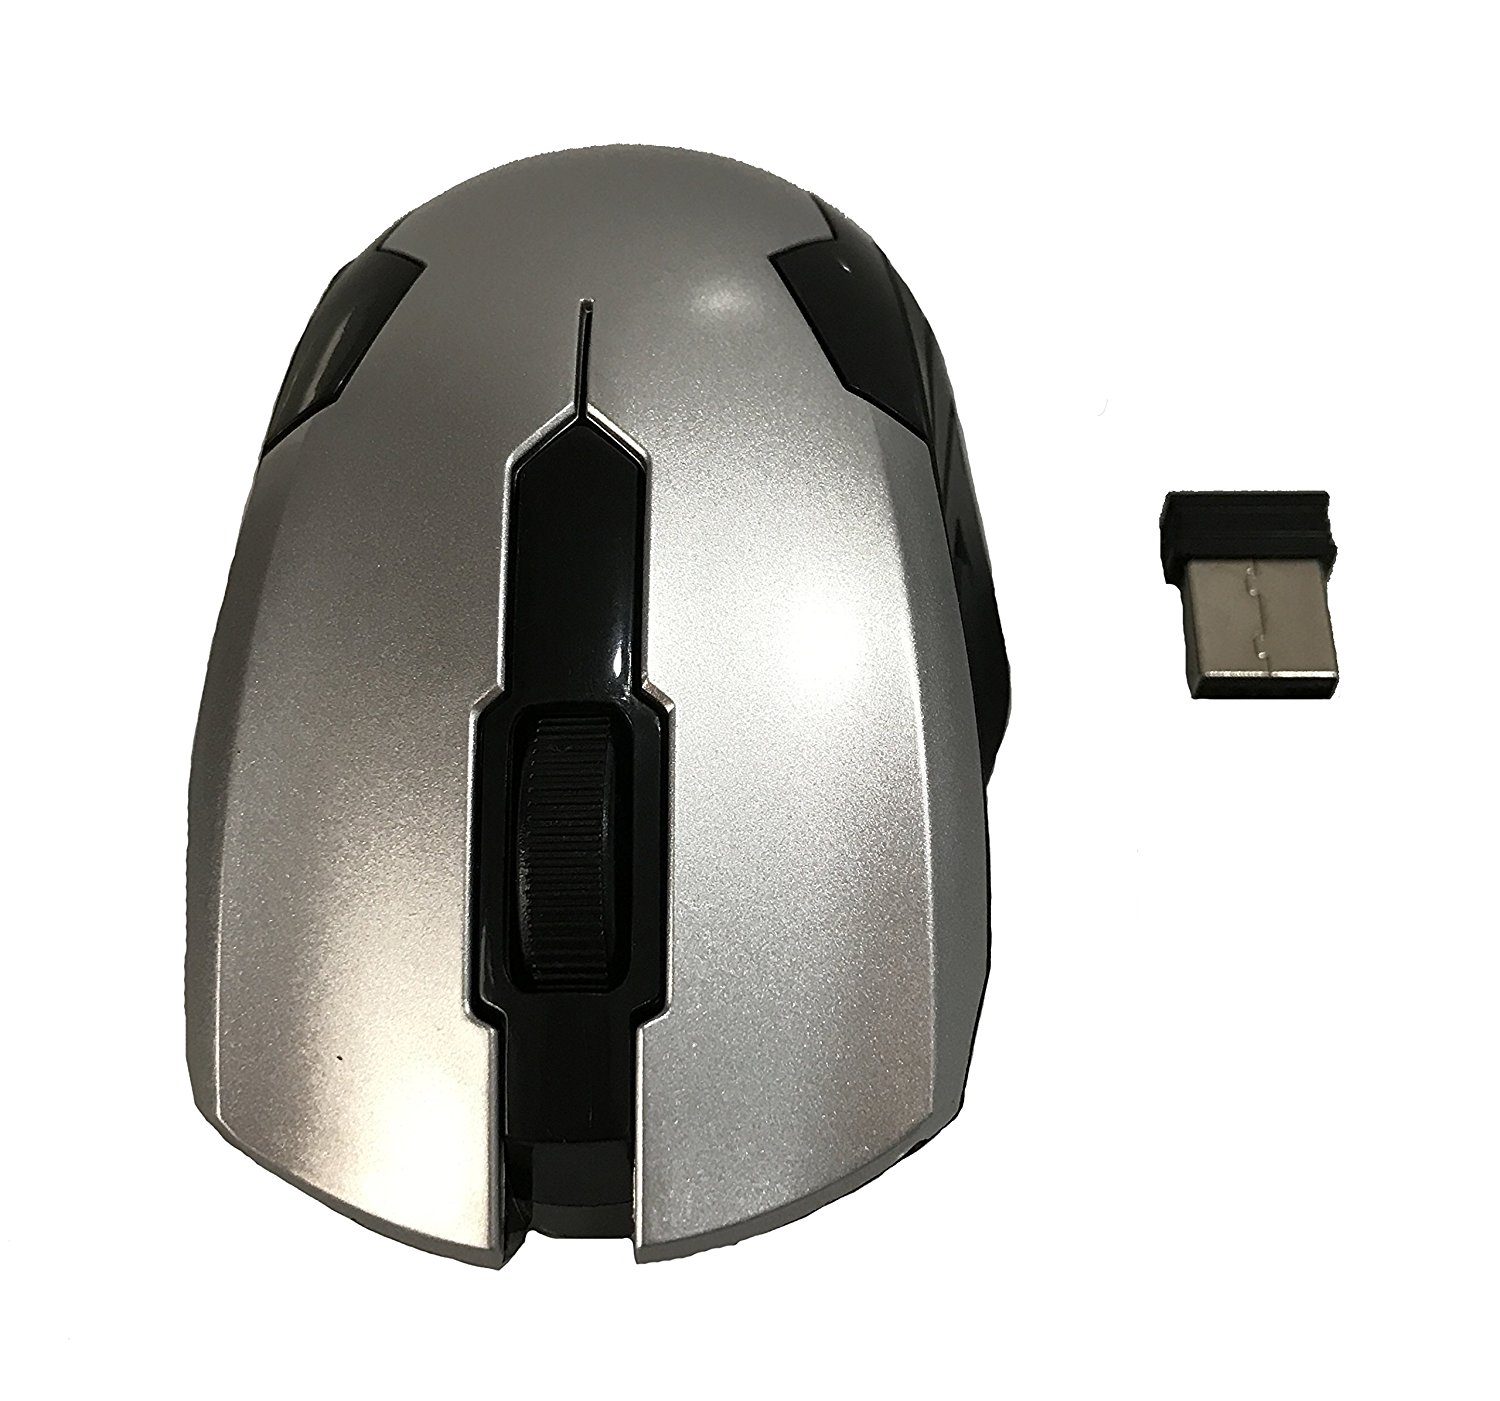 Cheap Bluetooth Mouse Usb Find Deals On Line At Wireless Optical Micro Power 24ghz Plug And Play Get Quotations With Web Scrolling Ergonomic Design Silver